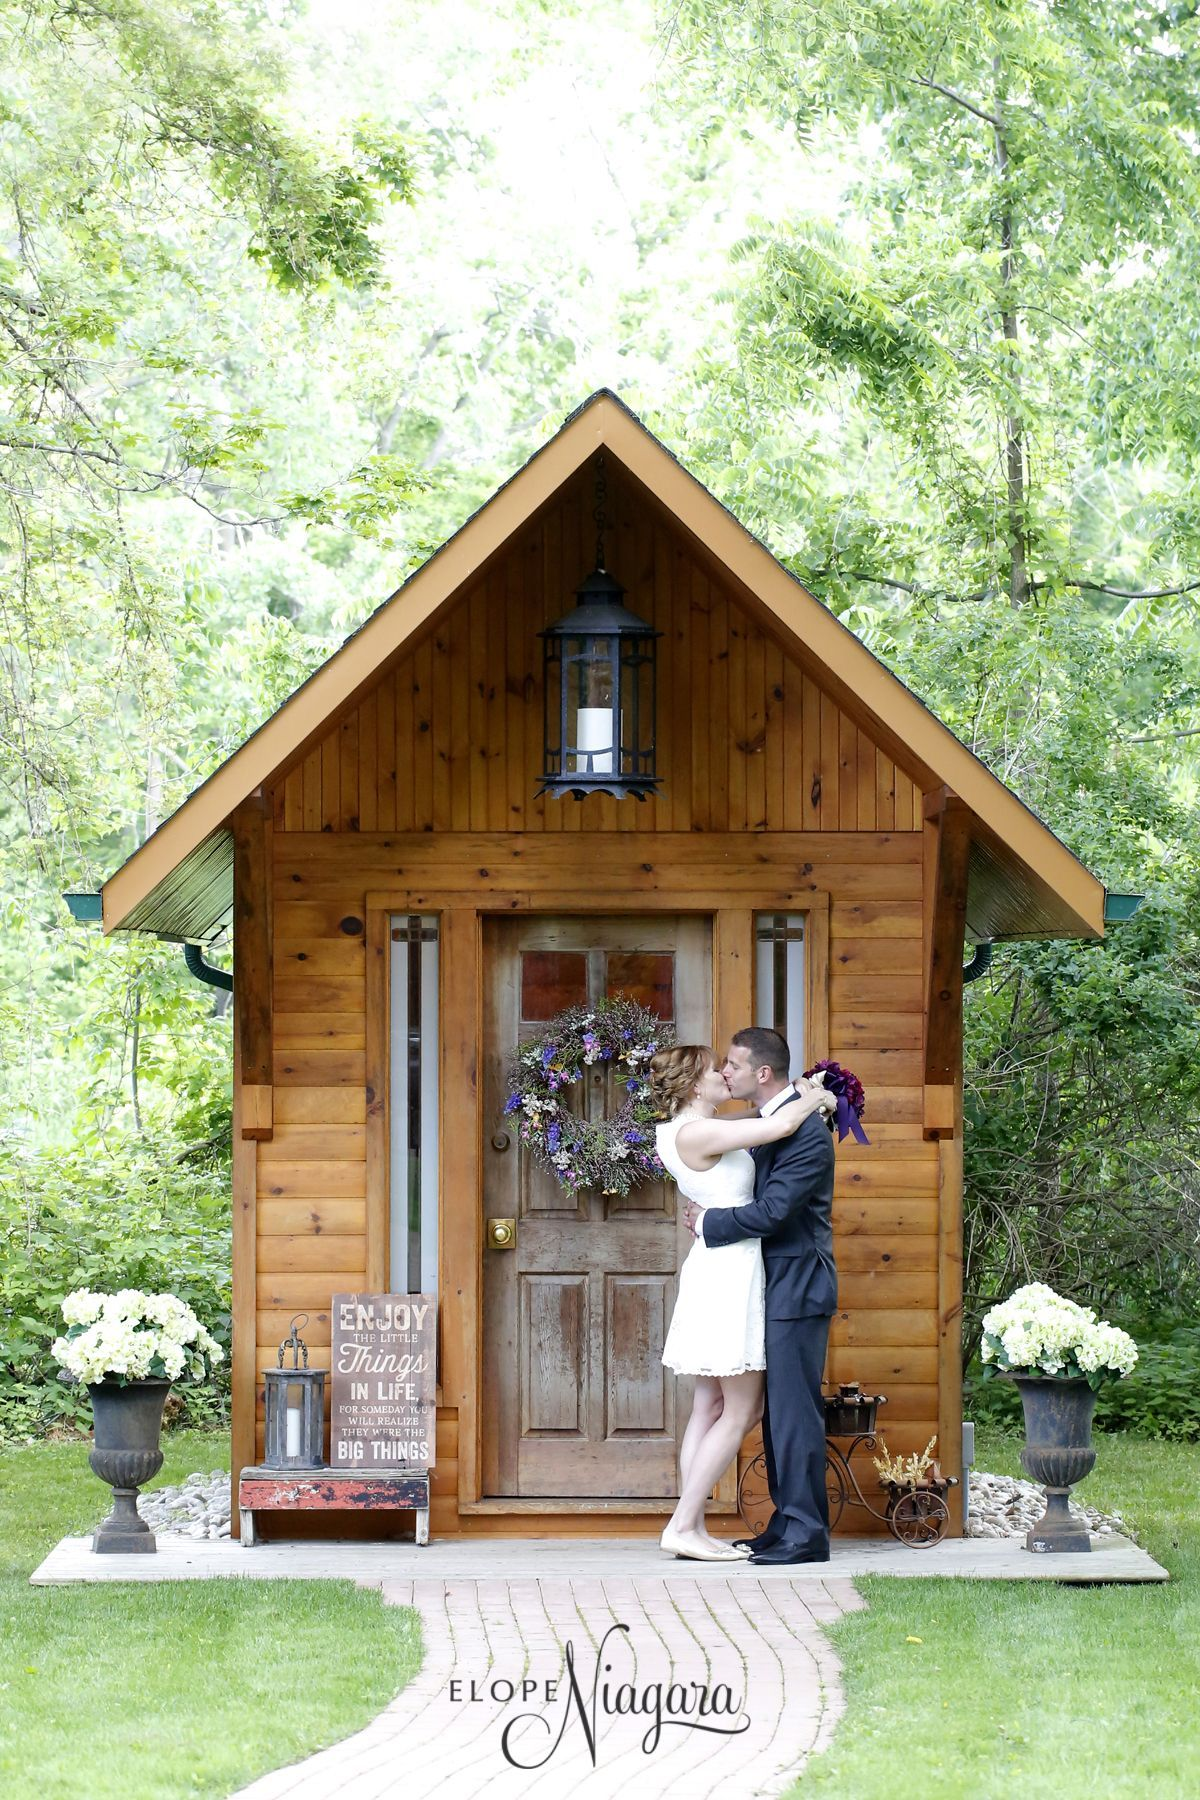 Our Cute And Charming Little Log Wedding Chapel Is Too Perfect For A Elopement